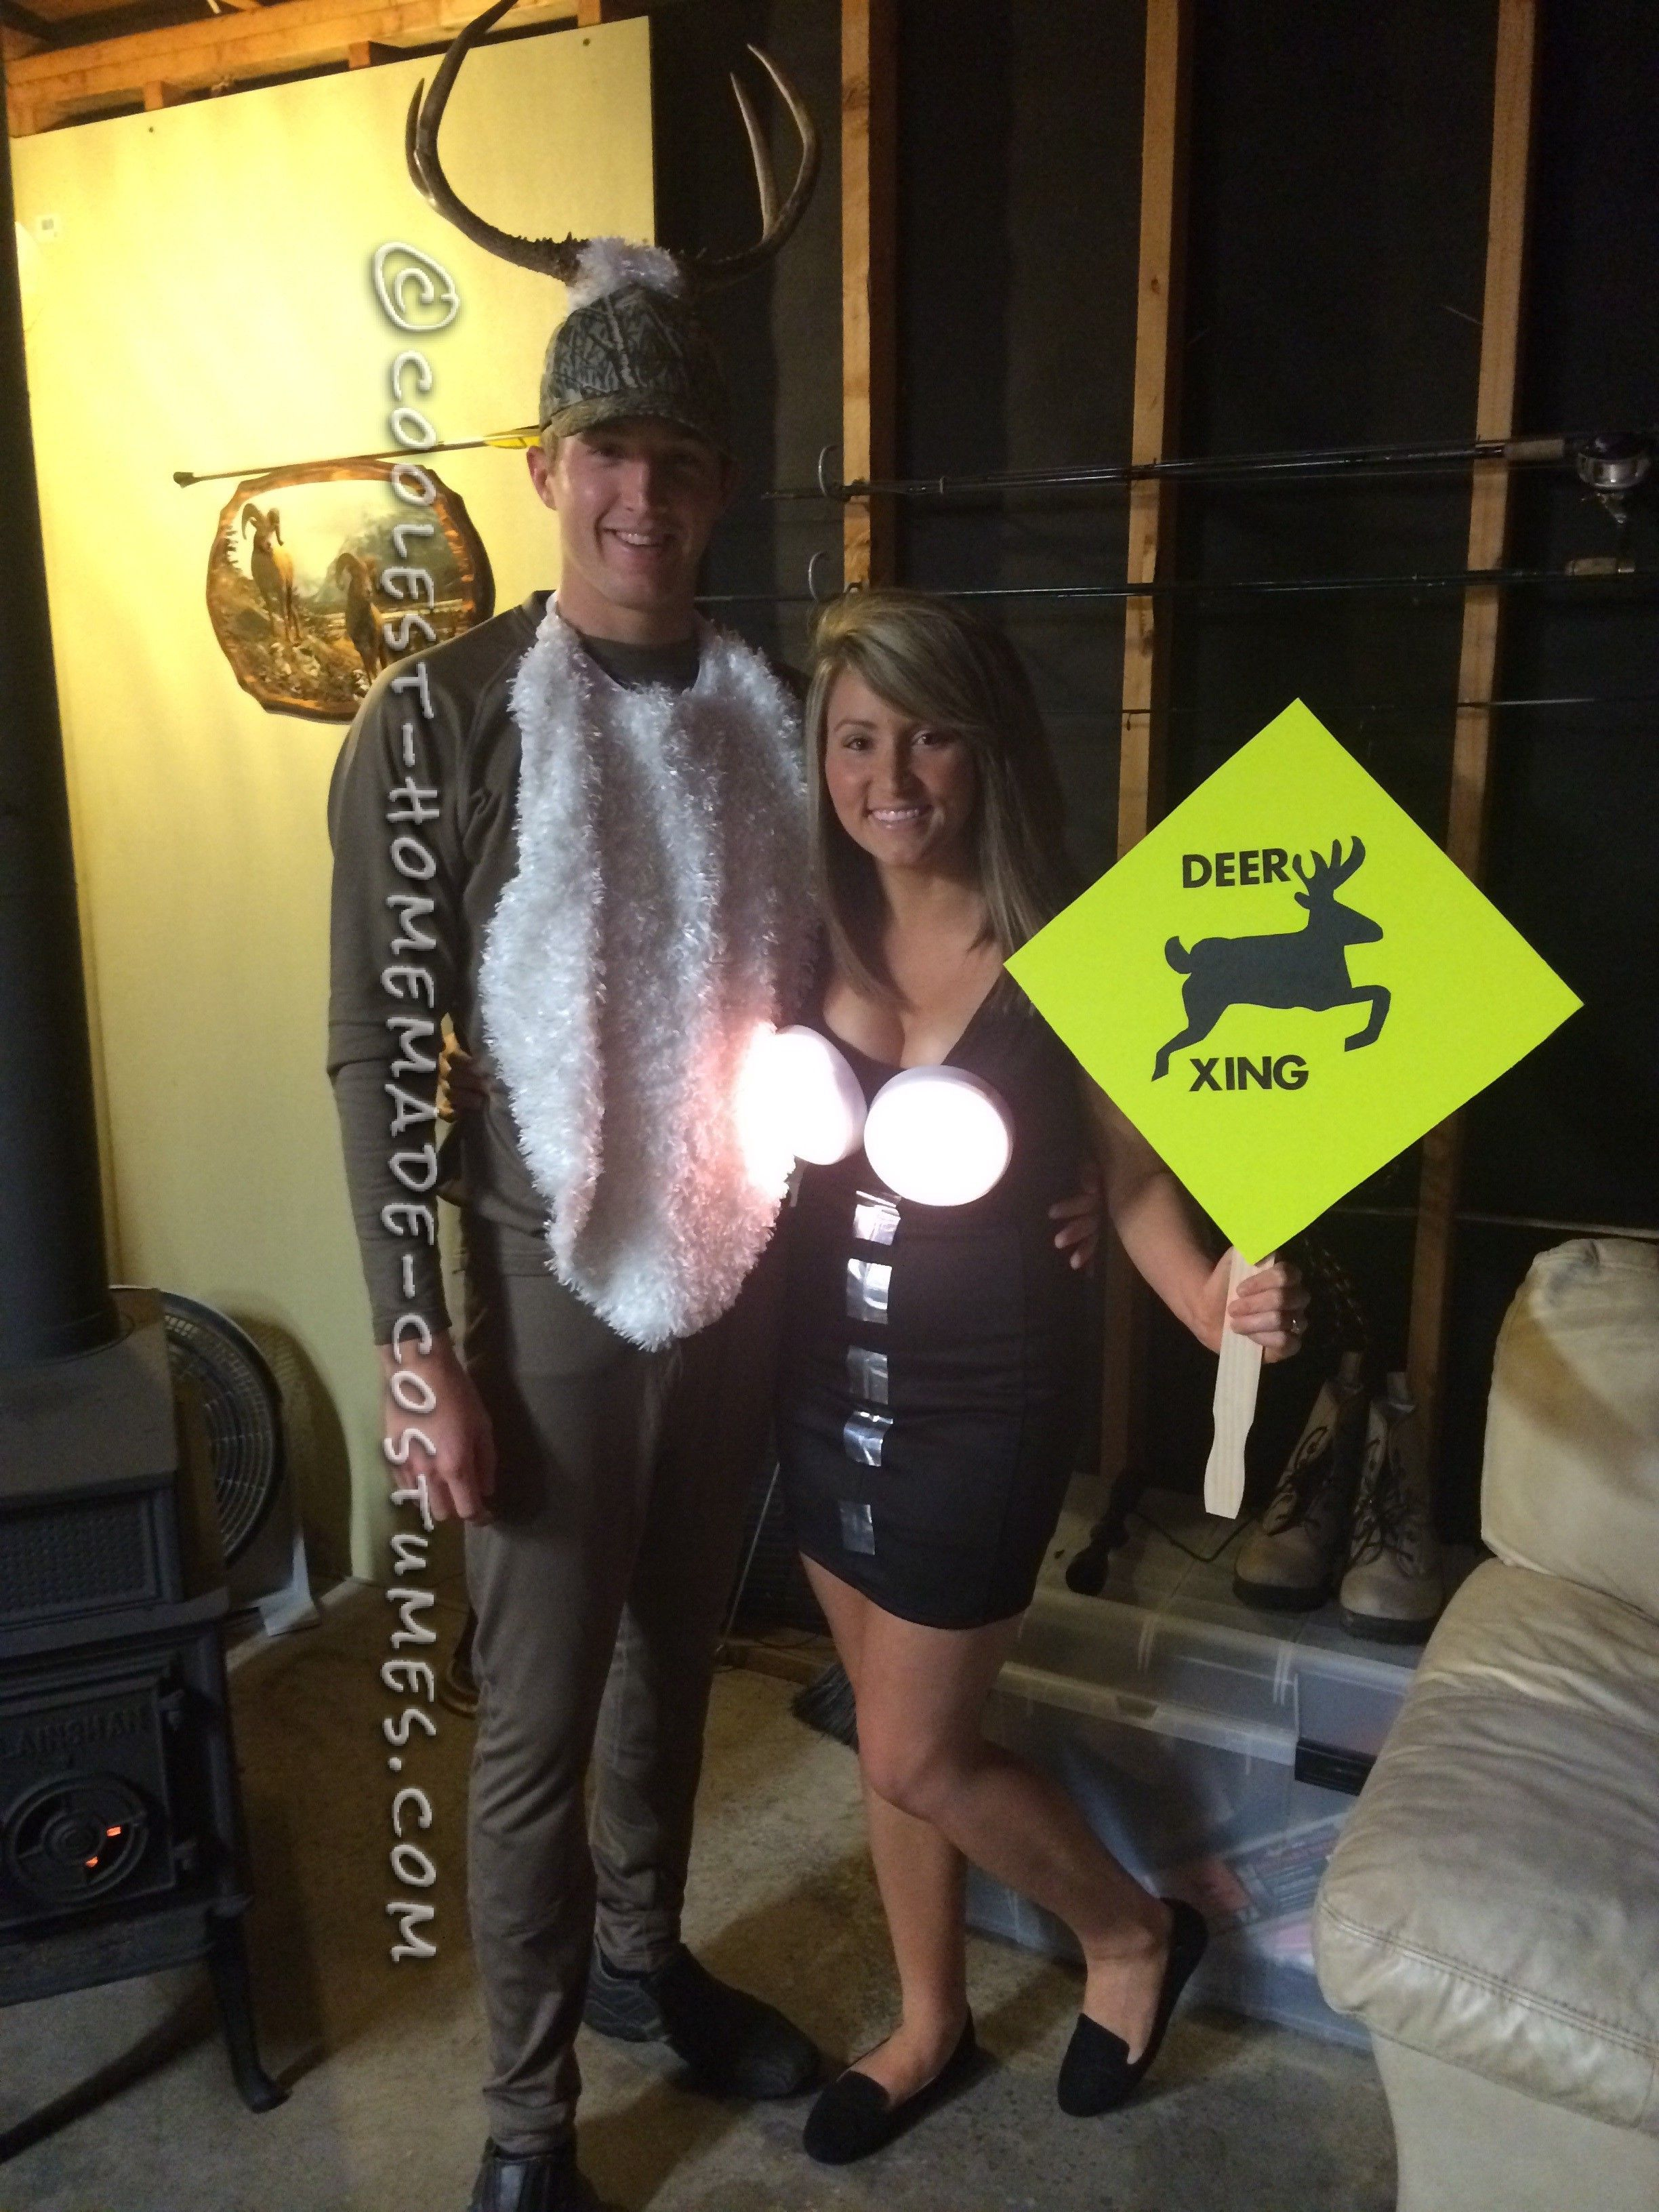 Coolest Homemade Deer in Headlights Couple Costume... Coolest Halloween Costume Contest  sc 1 st  Pinterest & Coolest Homemade Deer in Headlights Couple Costume | Pinterest ...